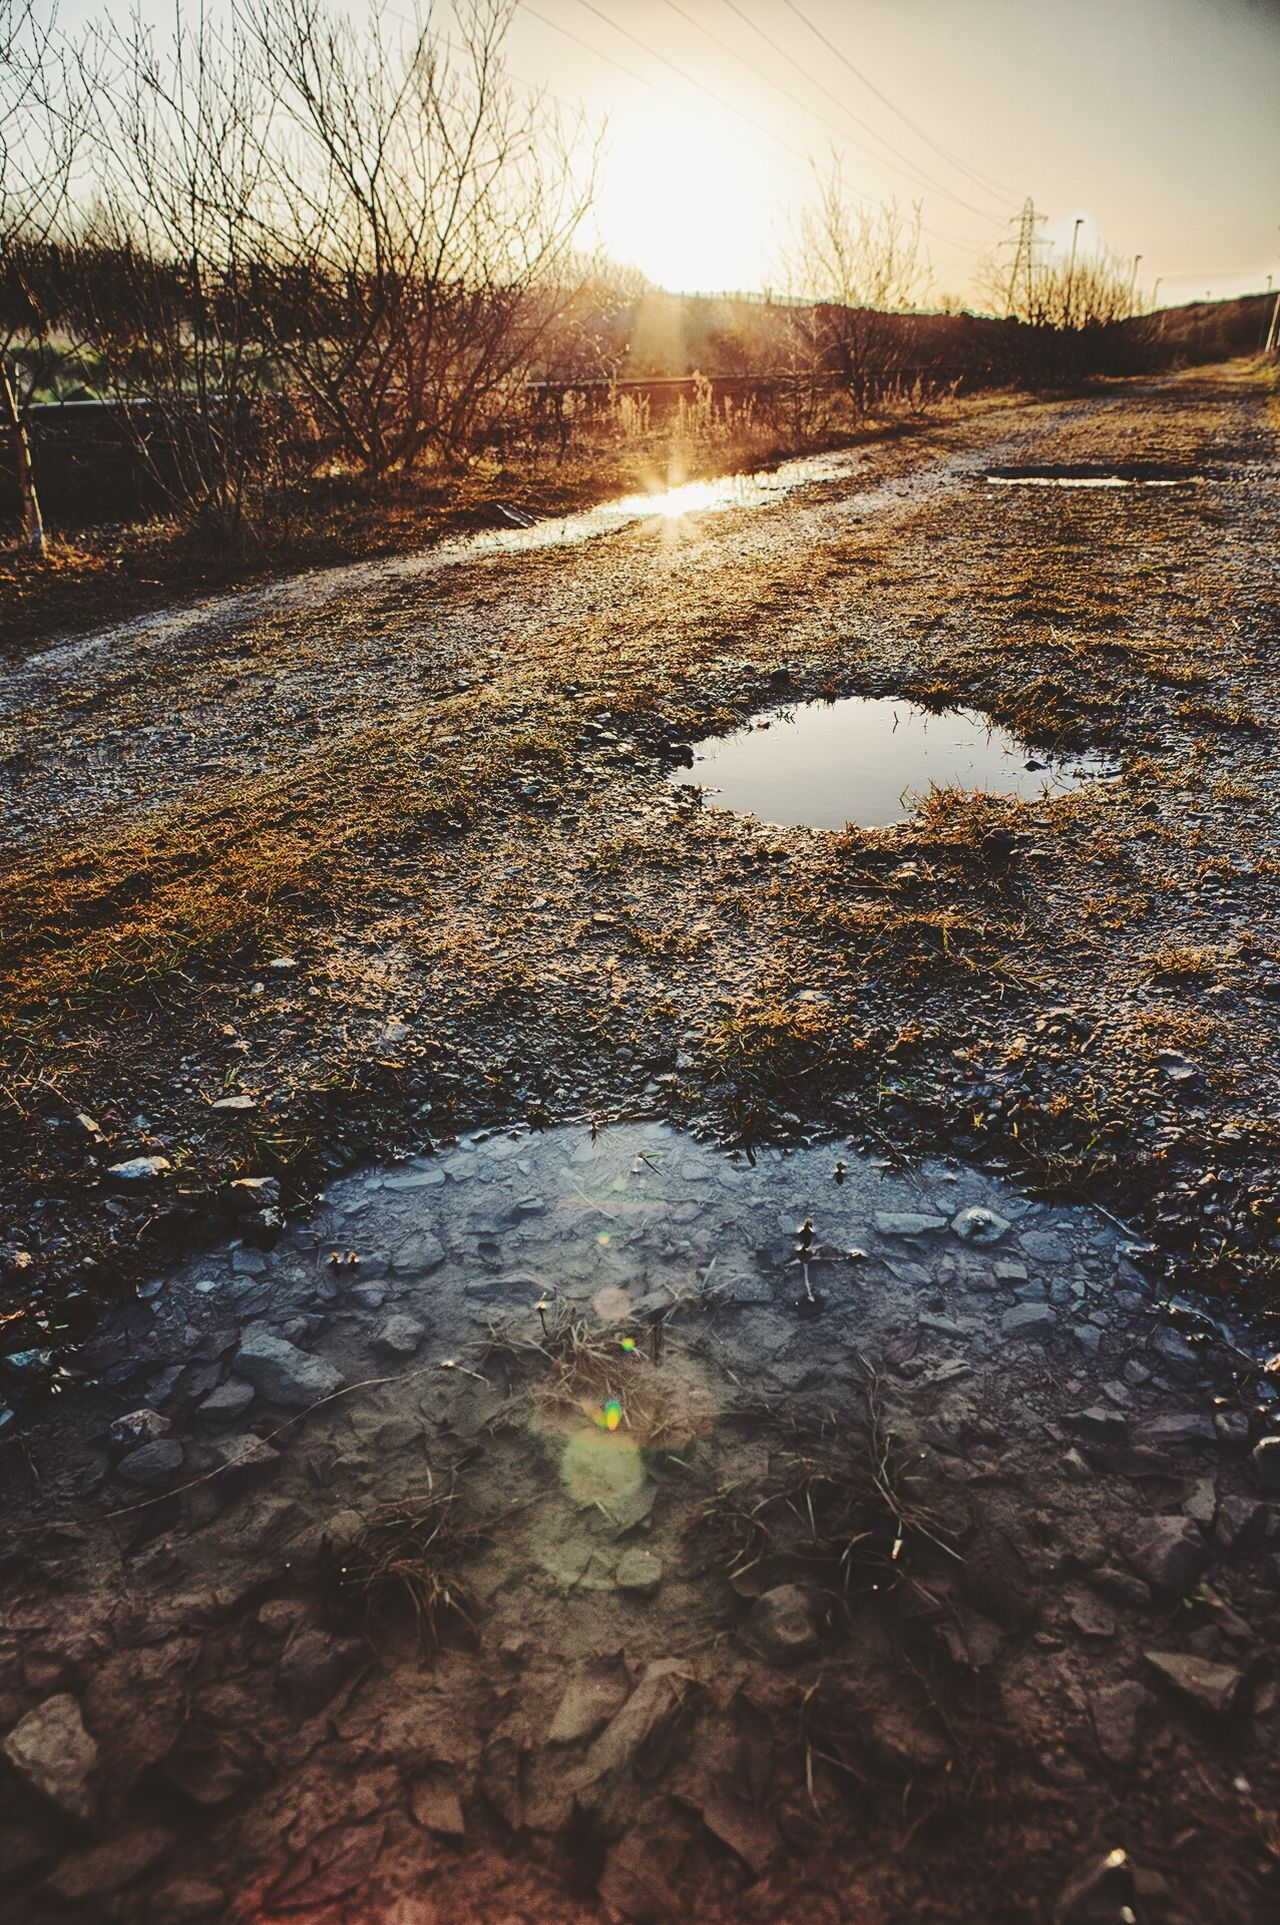 Countryside landscape with puddles at sunset